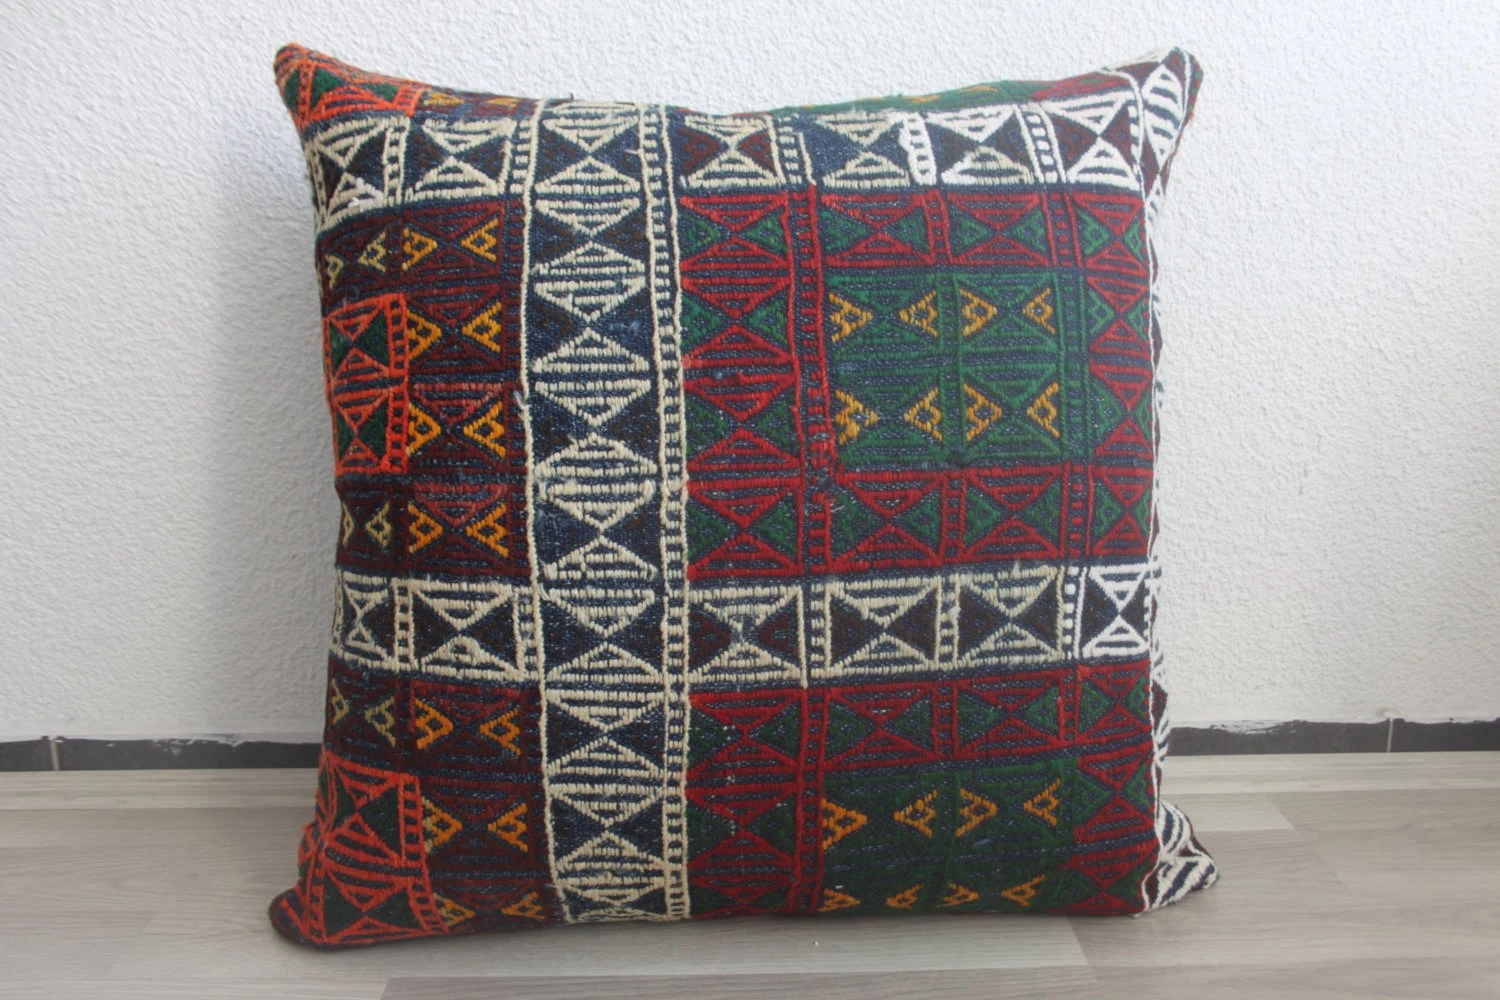 Couch Zipper Seat Covers Designer Pillow King Size Bedding Kilim Ottoman Large Cushion